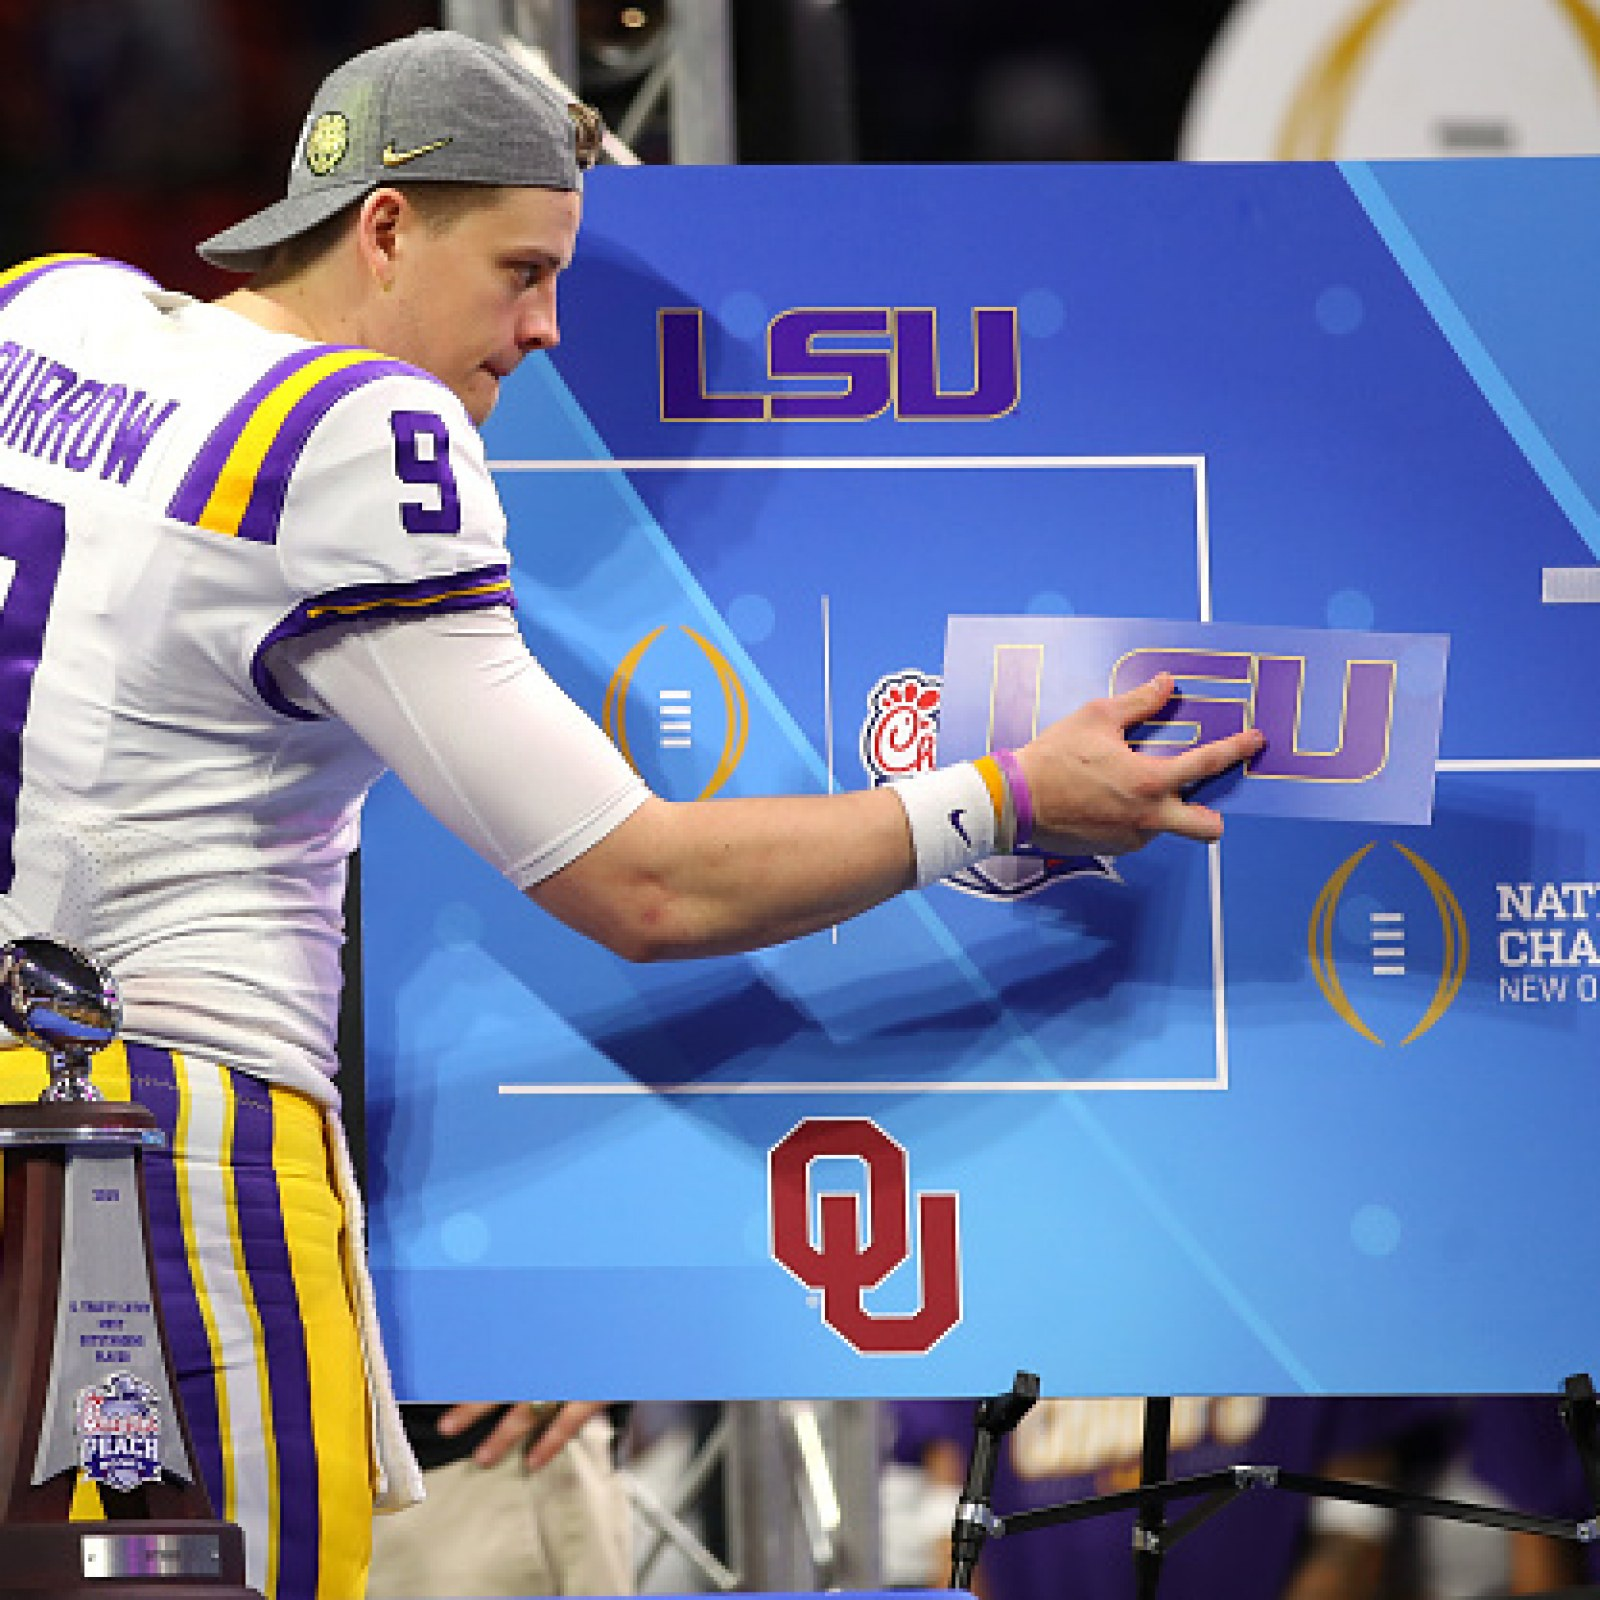 Who Won Lsu Or Clemson >> Lsu And Clemson To Face In College National Championship